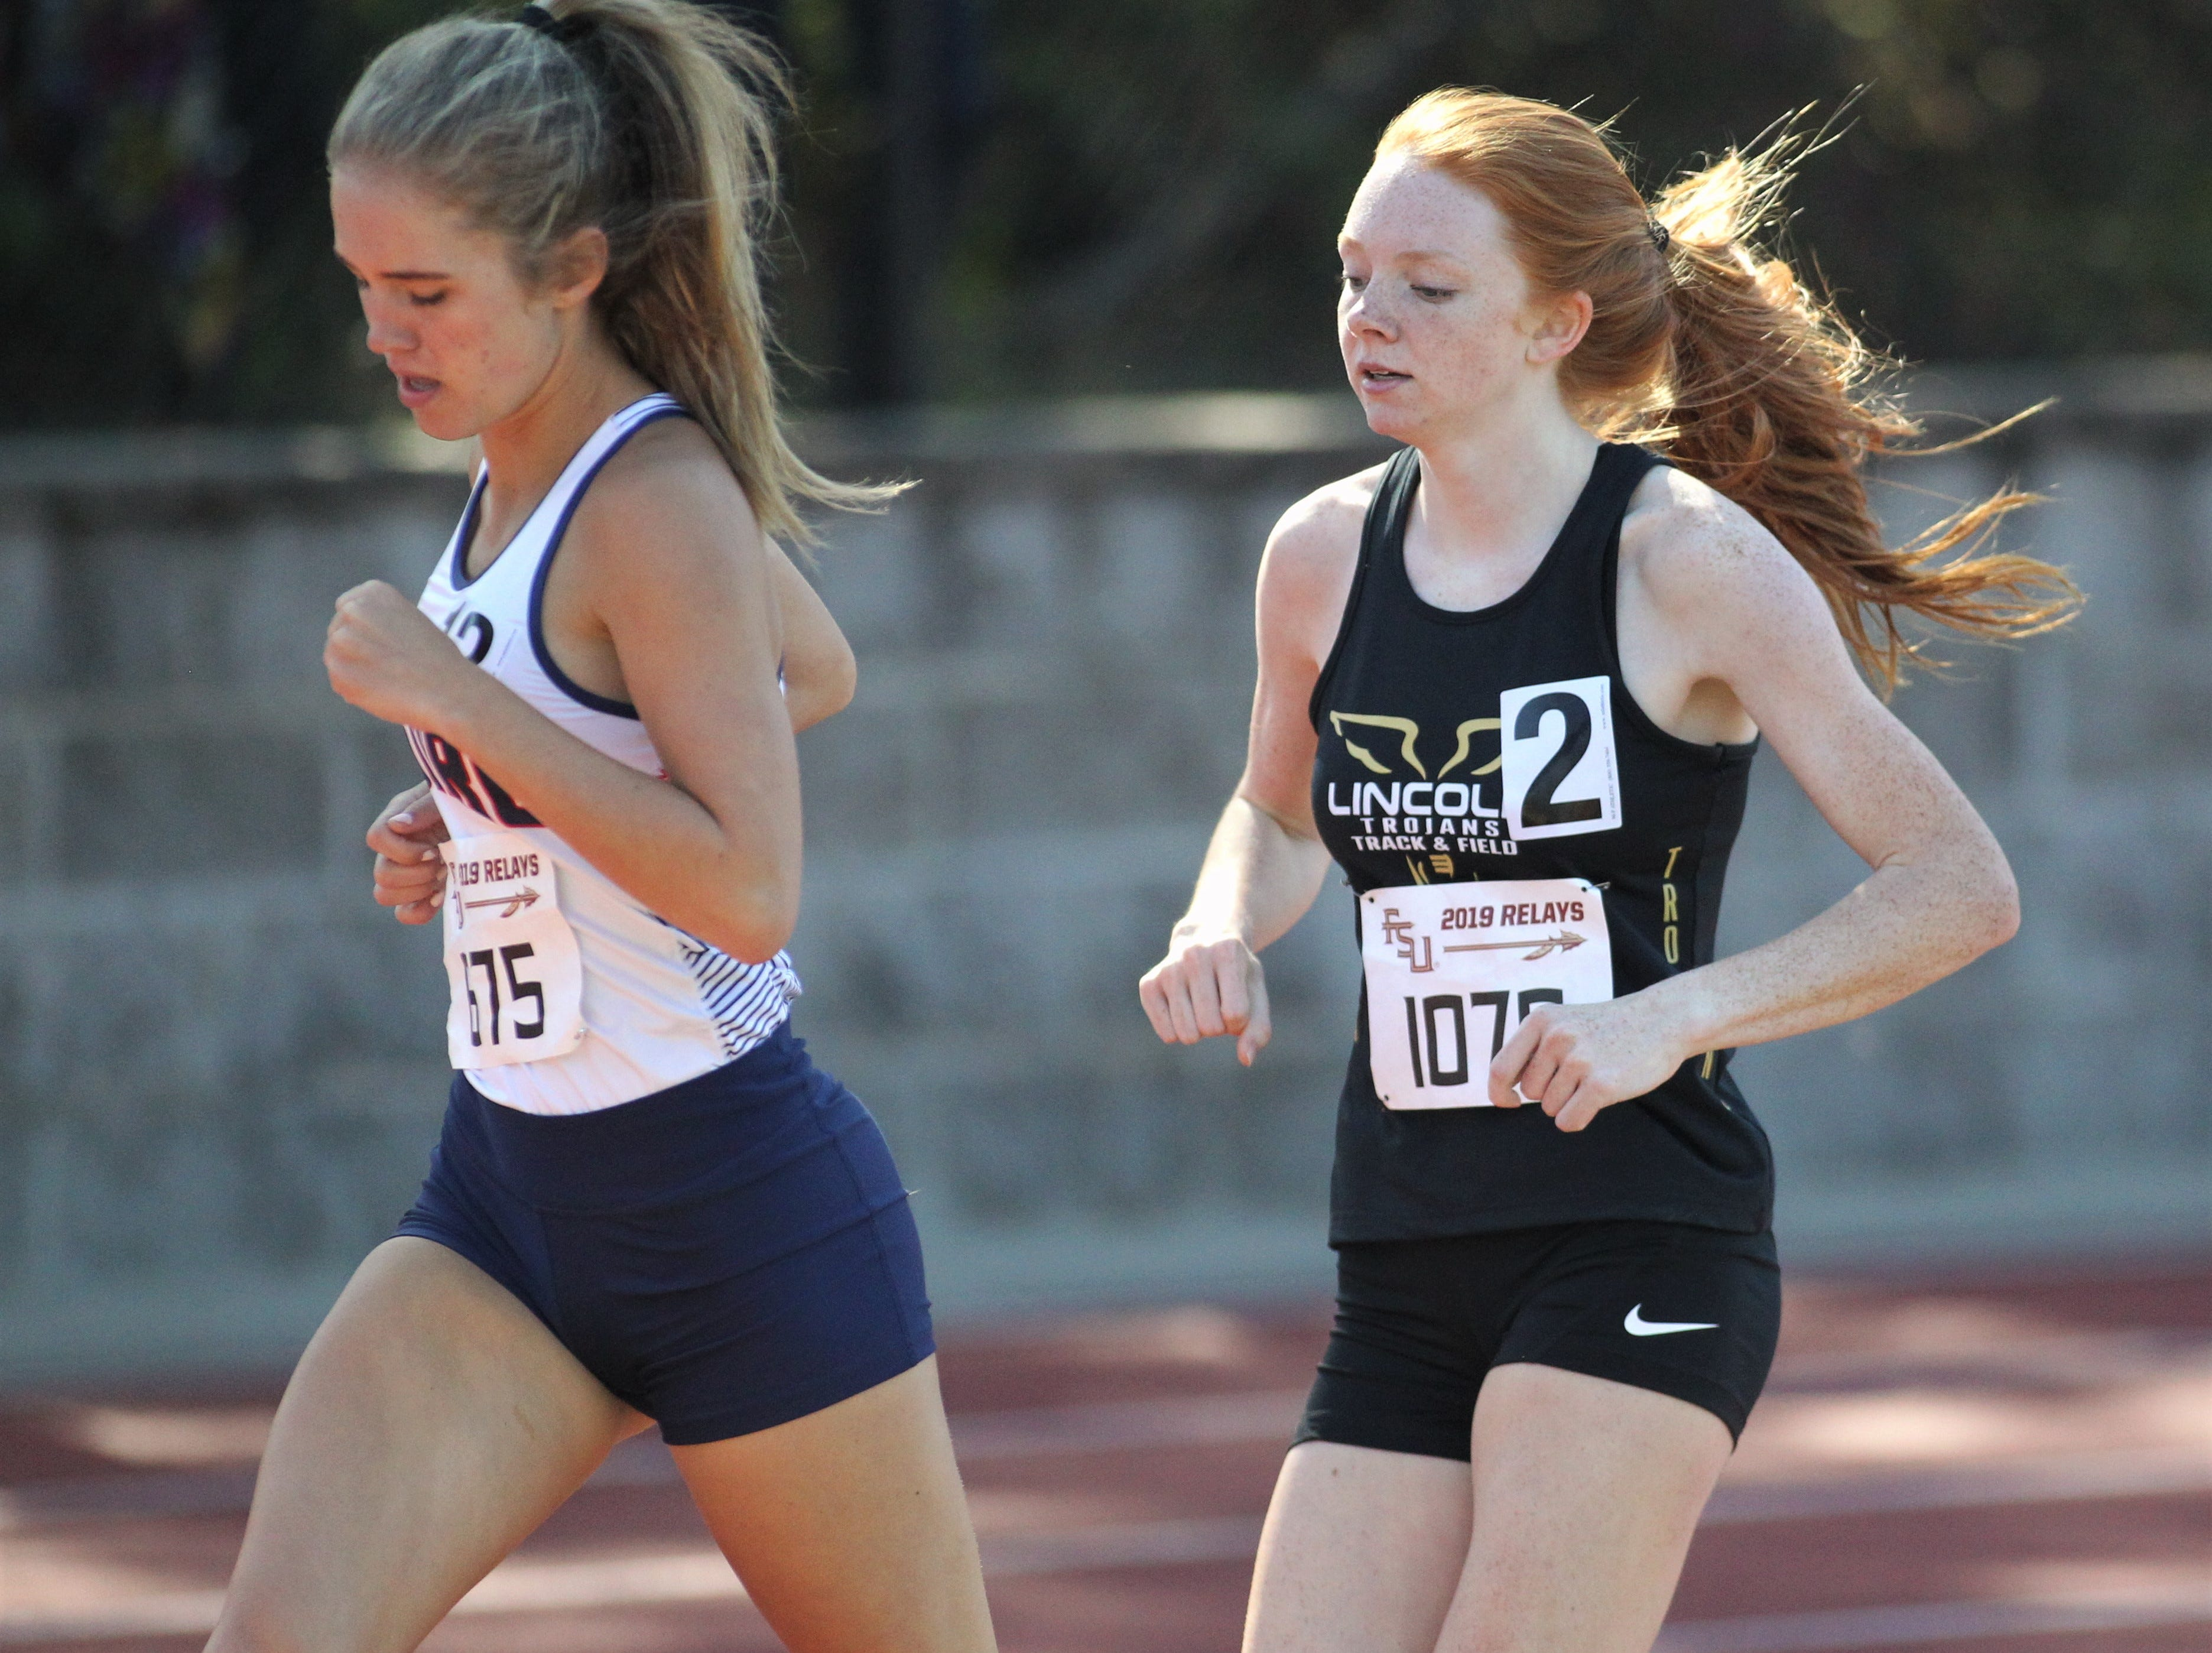 Lincoln sophomore Lauren Whittier runs the 1600 during the 40th annual FSU Relays at Mike Long Track on Saturday, March 23, 2019.